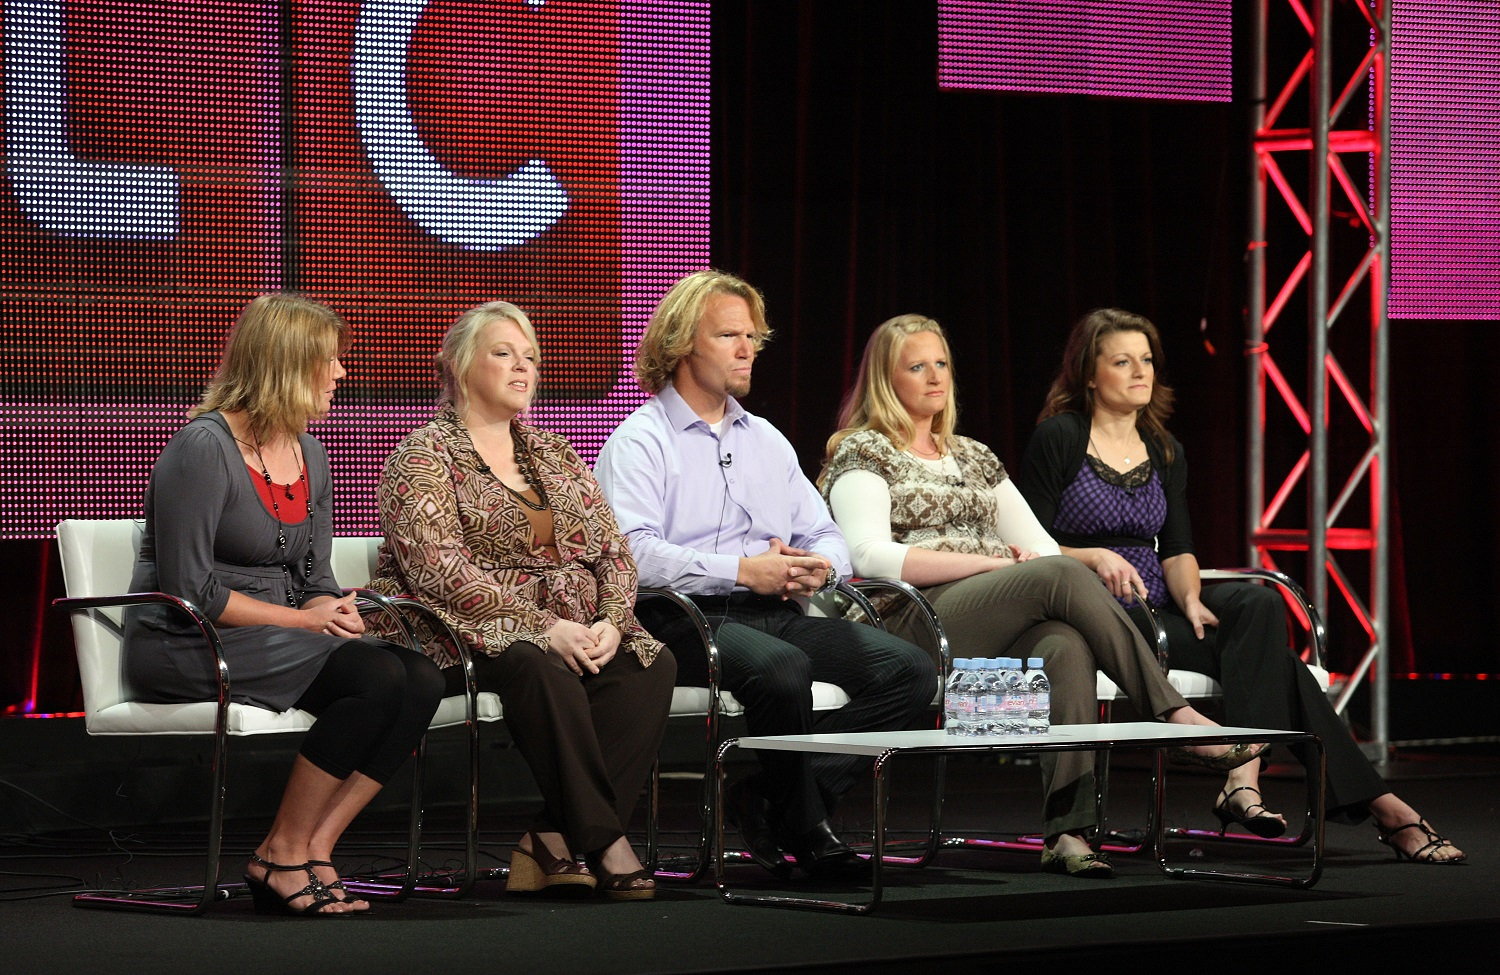 Meri Brwon, Janelle Brown, Kody Brown, Christine Brown and Robyn Brown of Sister Wives